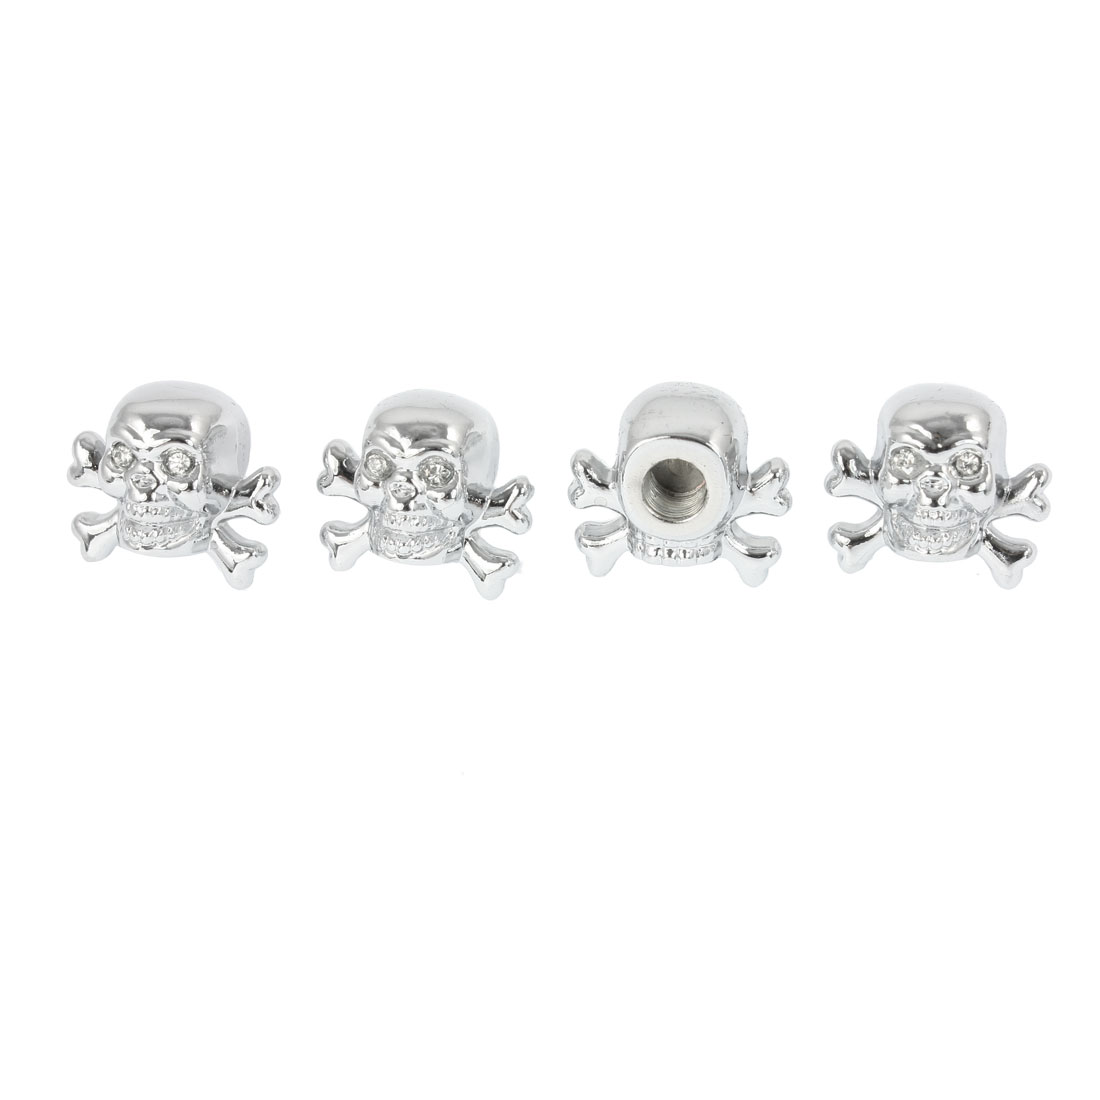 4 Pcs Silver Tone Rhinestones Eyes Skull Shape Auto Car Tire Valve Dust Cap Cover